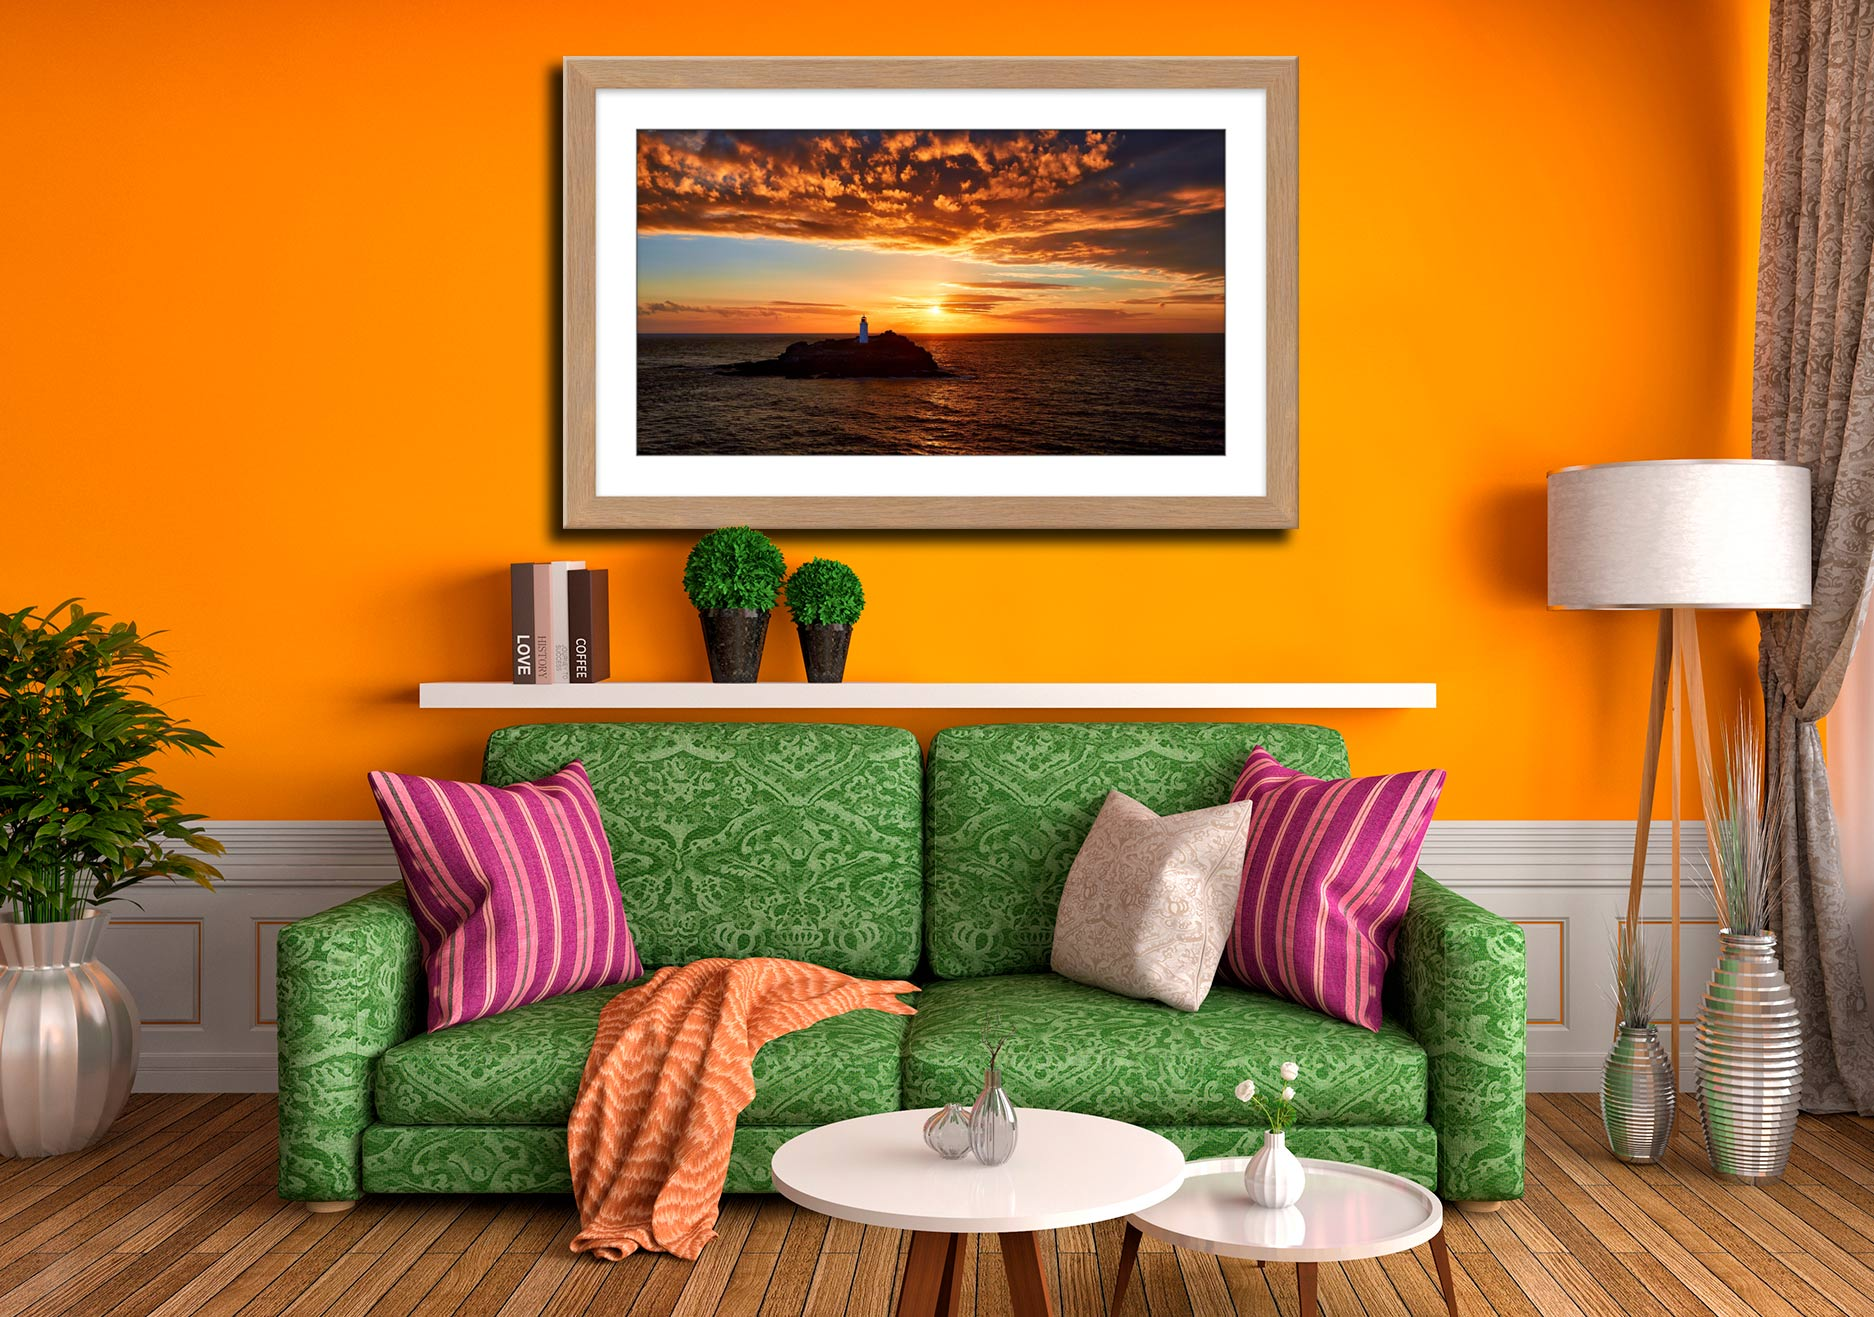 Sunset Over Godrevy Lighthouse - Framed Print with Mount on Wall